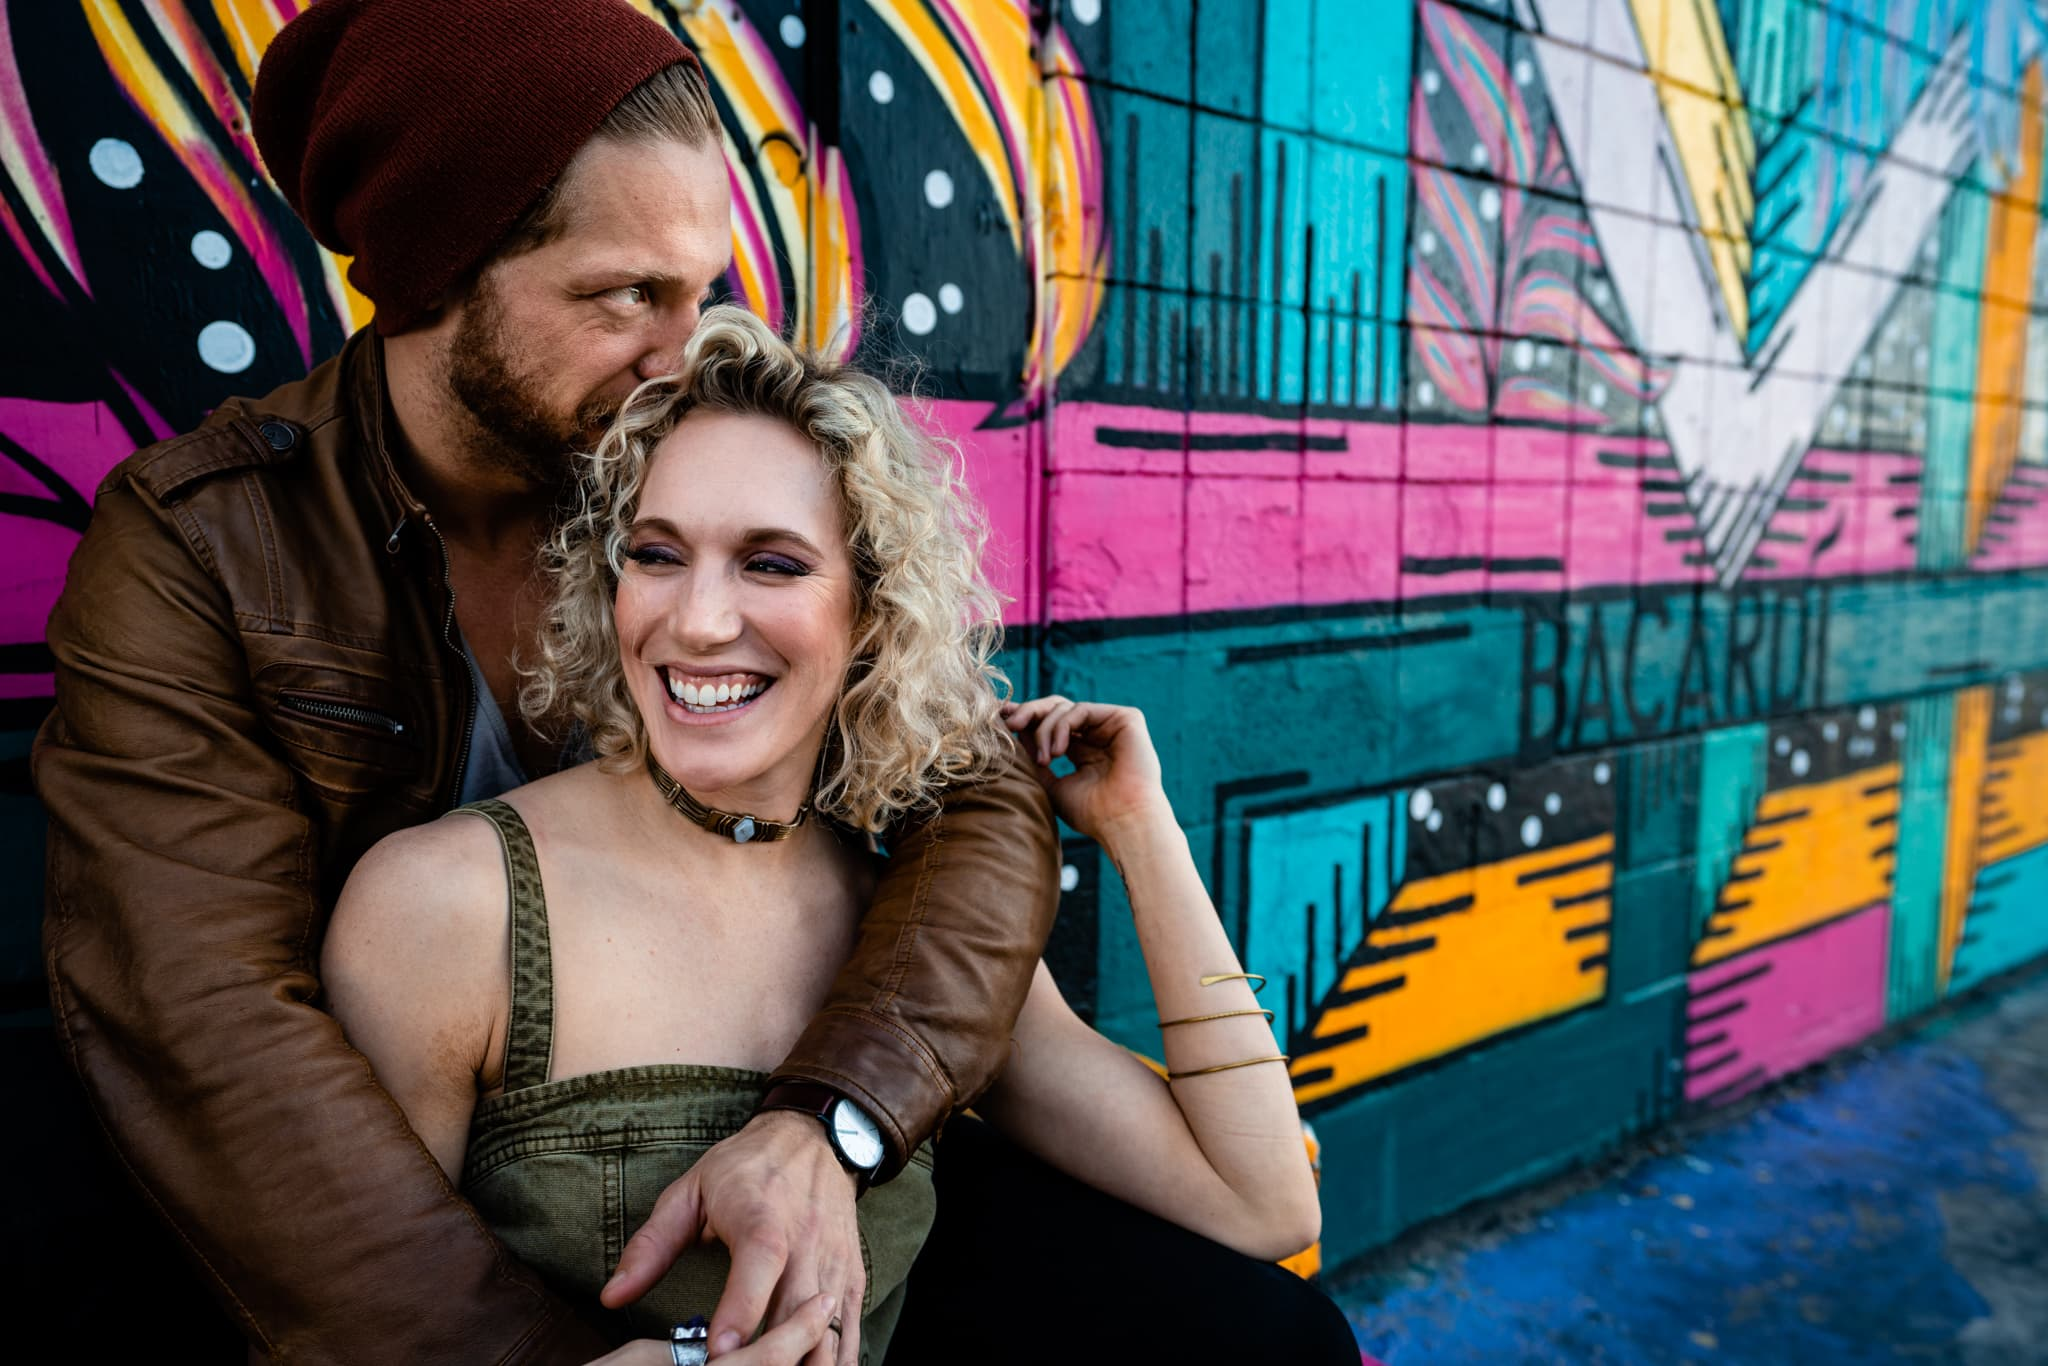 Man wraps arms around woman as they sit against graffiti on Fremont Street in Las Vegas by Las Vegas Wedding Photographer Studio 22 Photography